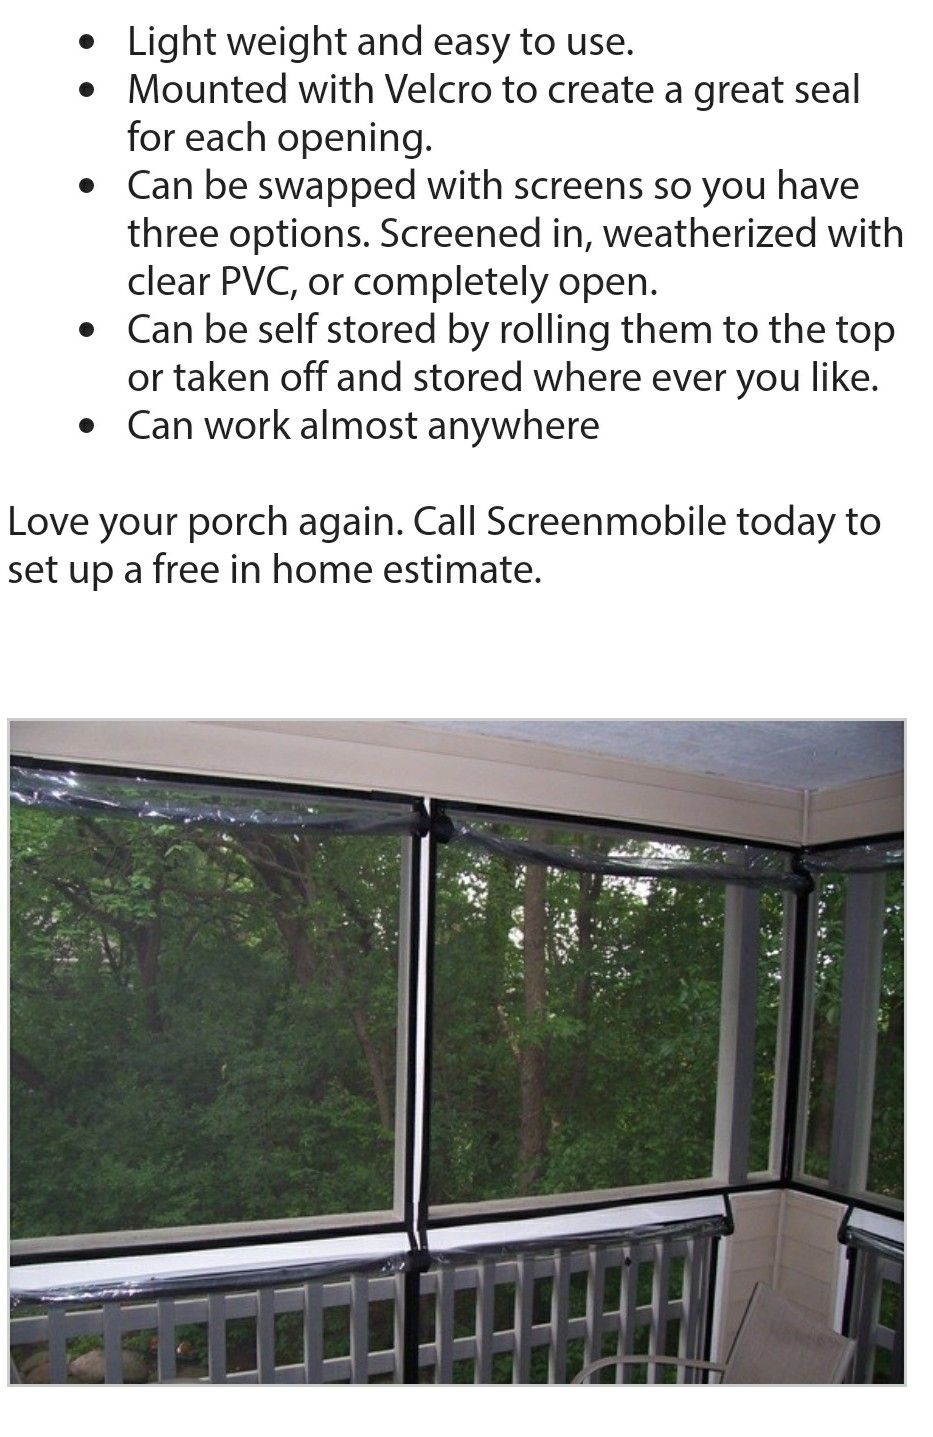 Pollen panels Screened in porch, Screened porch, Mobile home